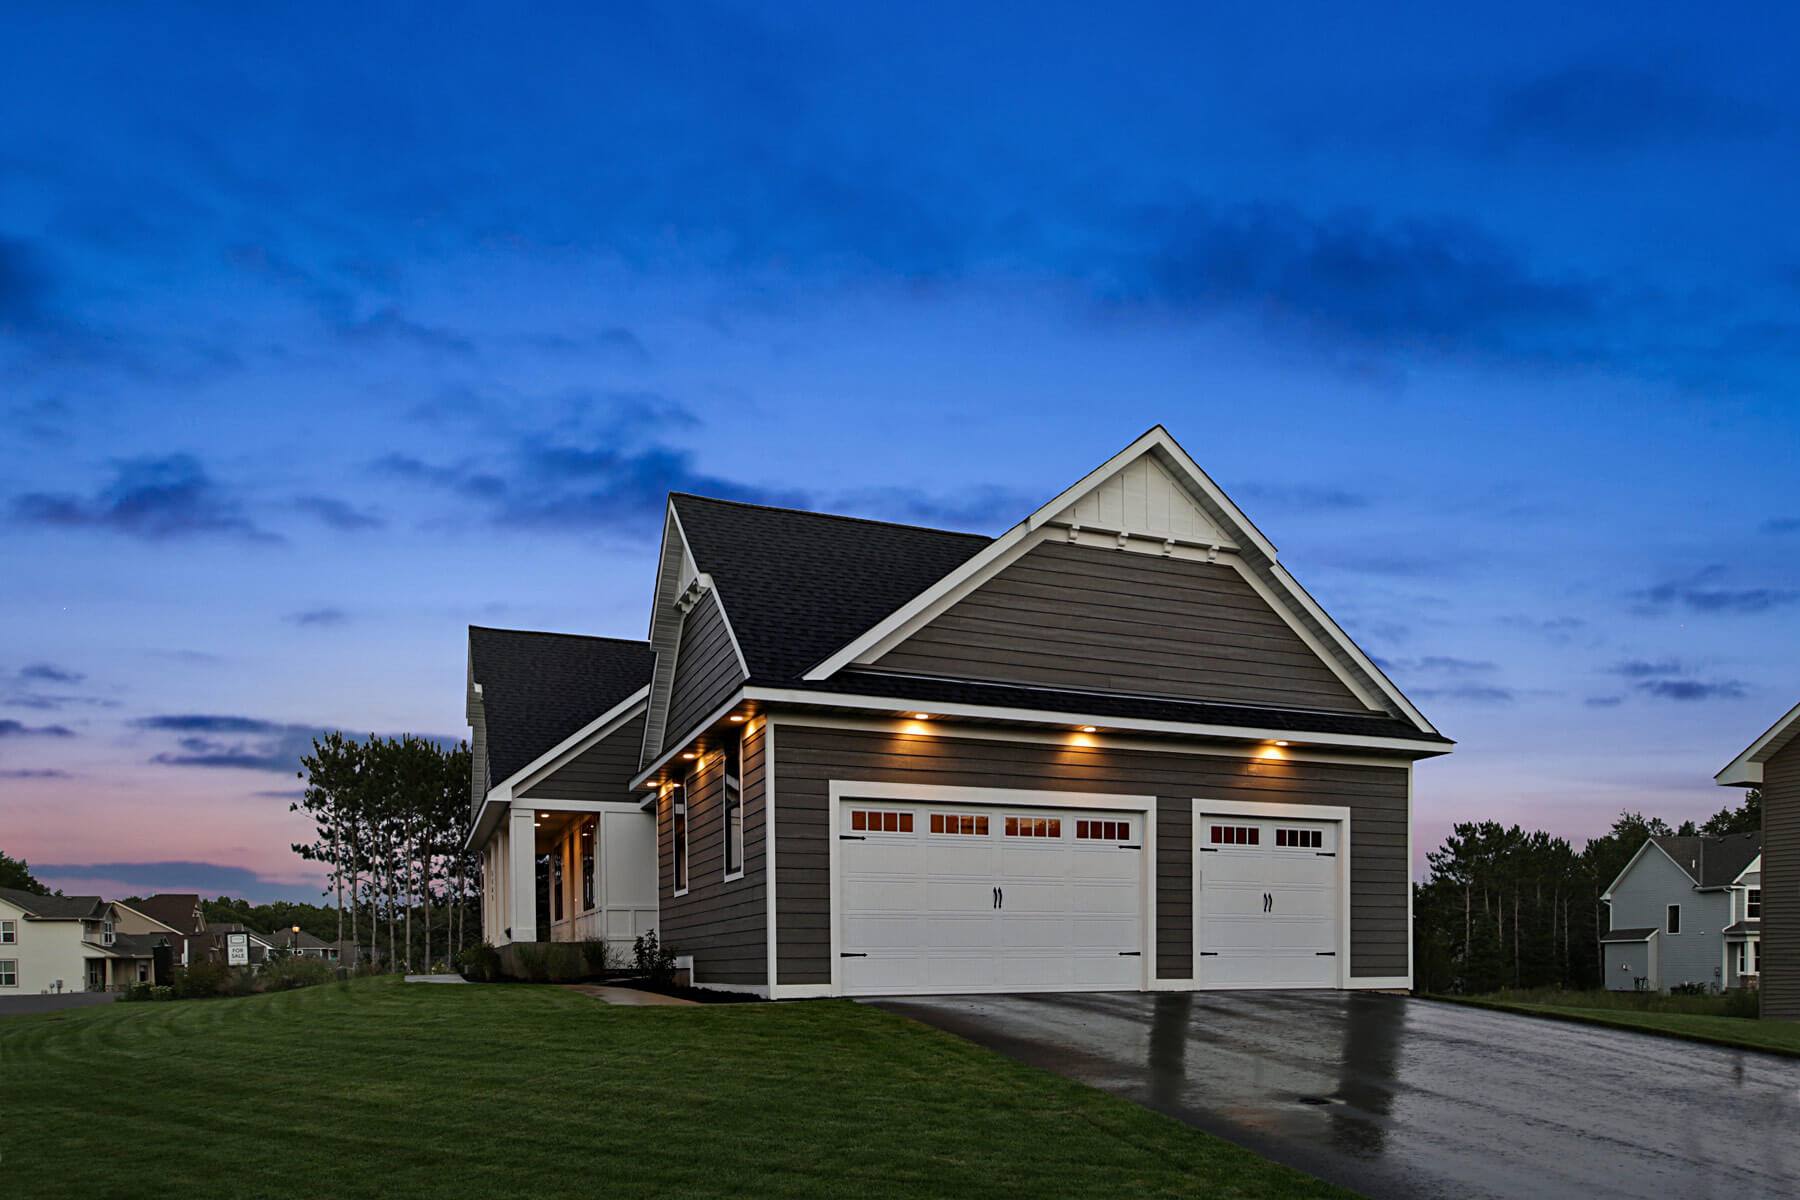 Twin Cities New Construction Monterey Court Home Stillwater Minnesota exterior 3-car garage built by Red Pine Builders